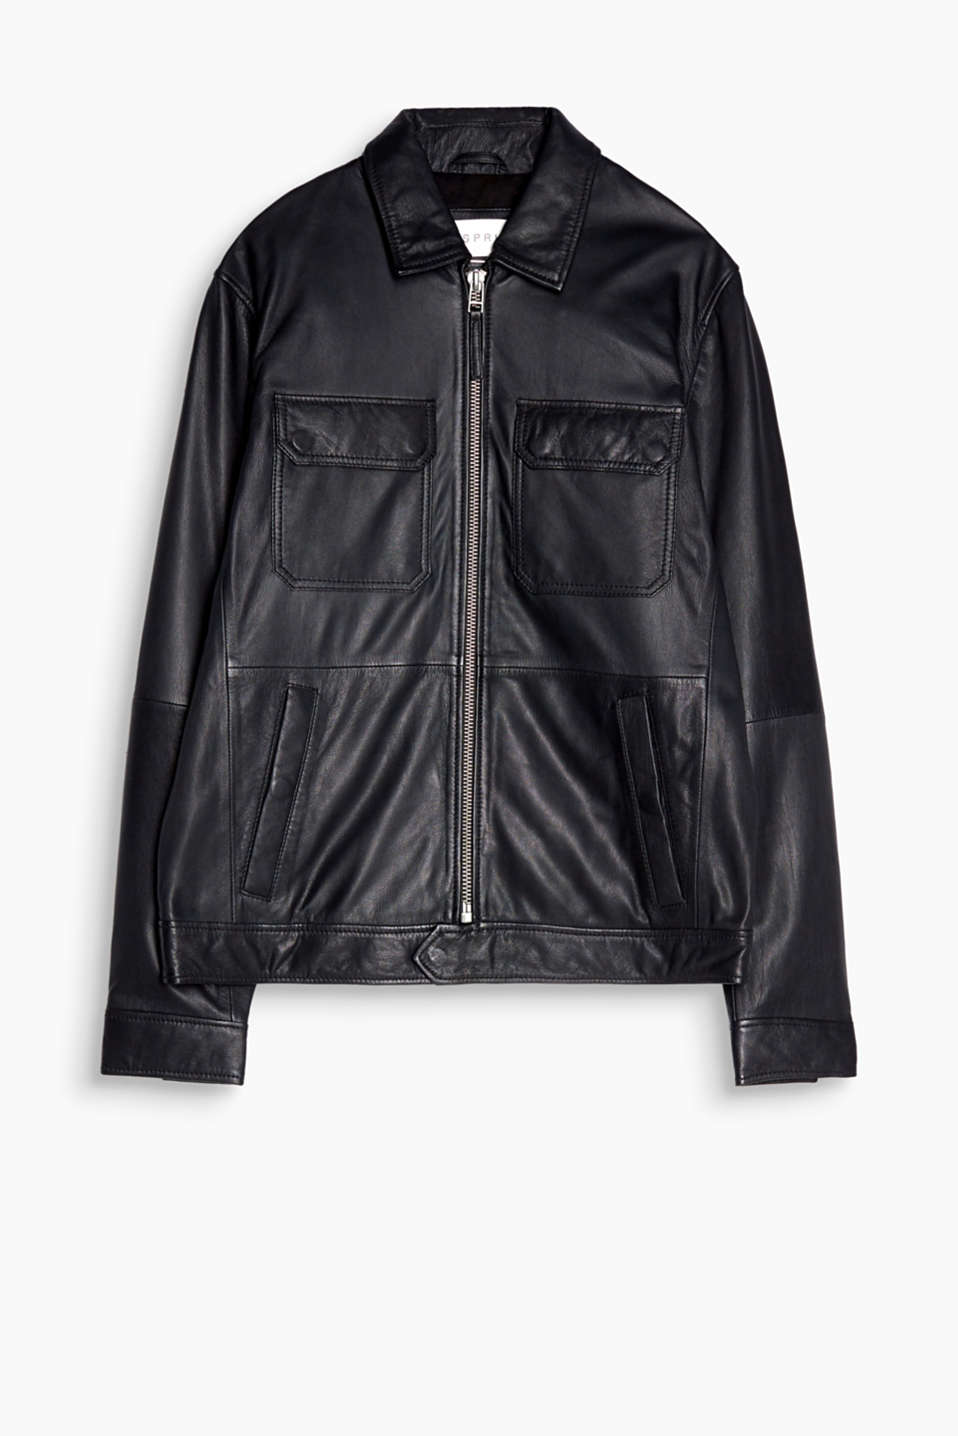 A high-quality fashion essential! This sporty leather bomber jacket features understated details.